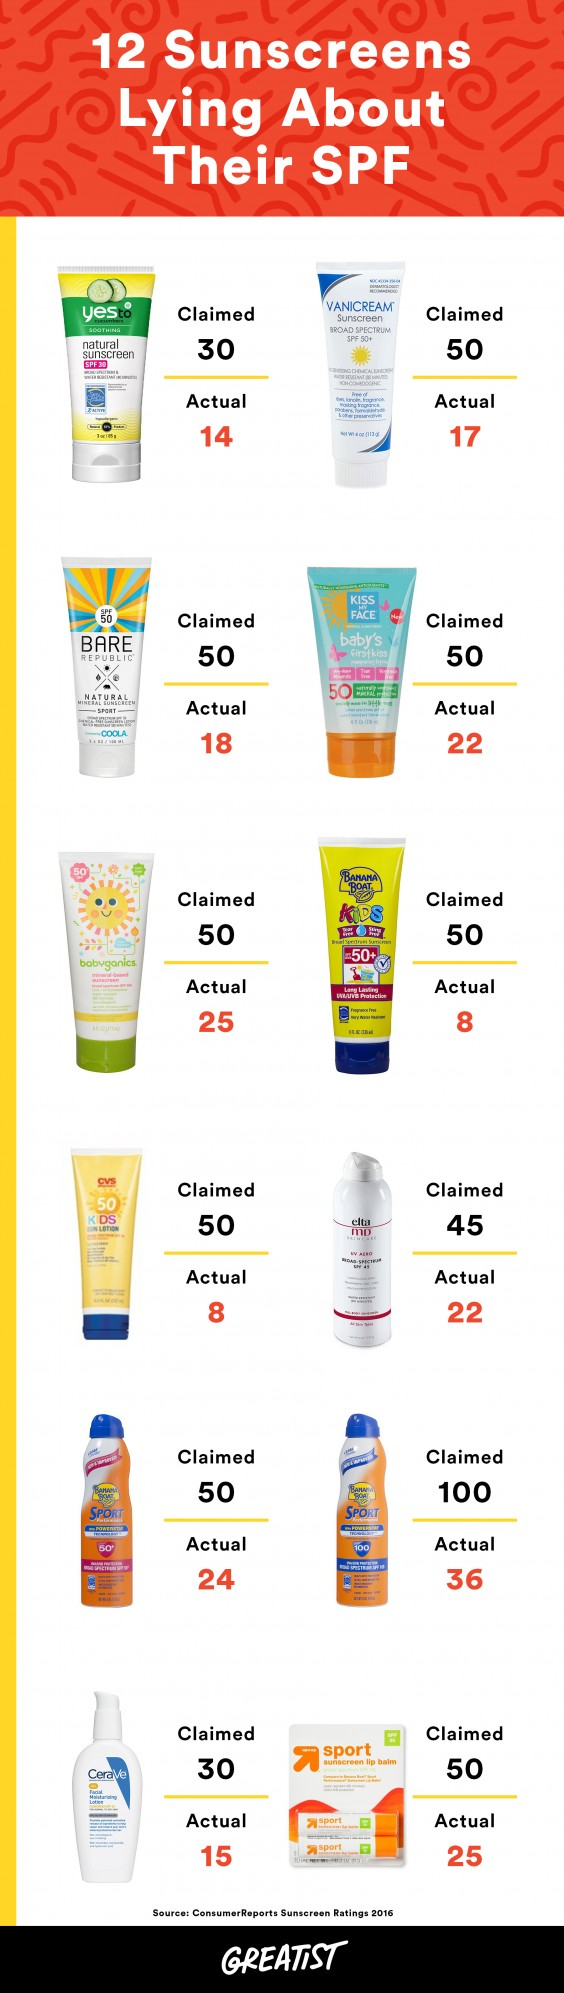 Sunscreens Lying About SPF